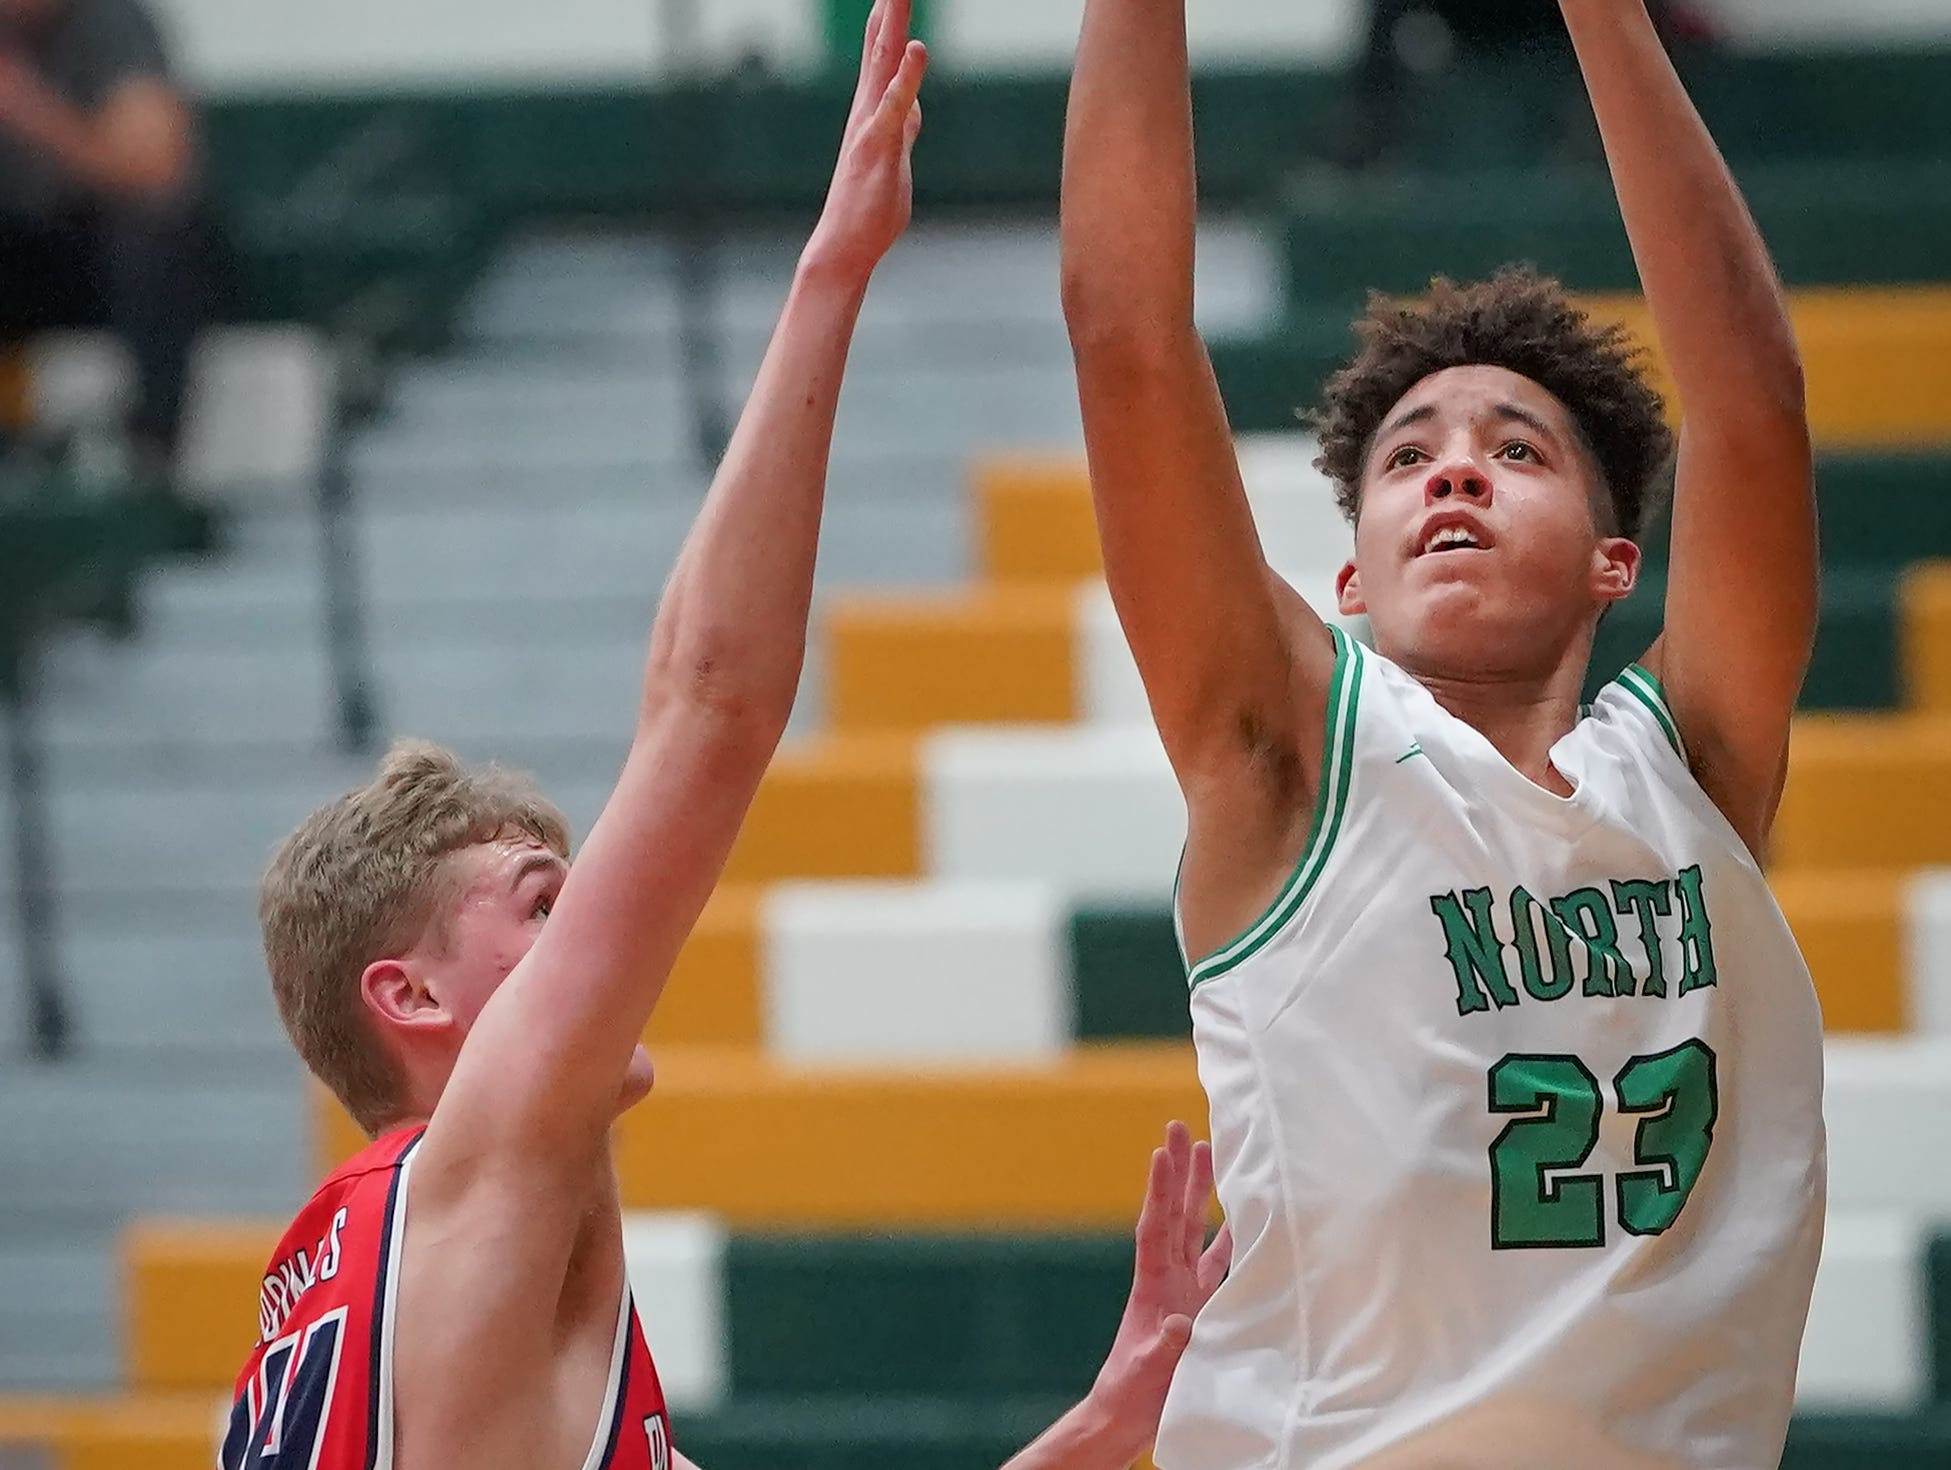 Jalen Keago (23) of Oshkosh North goes up for a shot. The Oshkosh North Spartans hosted the Stevens Point Pacelli Catholic Cardinals in the Friday night game of the Fox River Brewing Thanksgiving Classic Tournament.